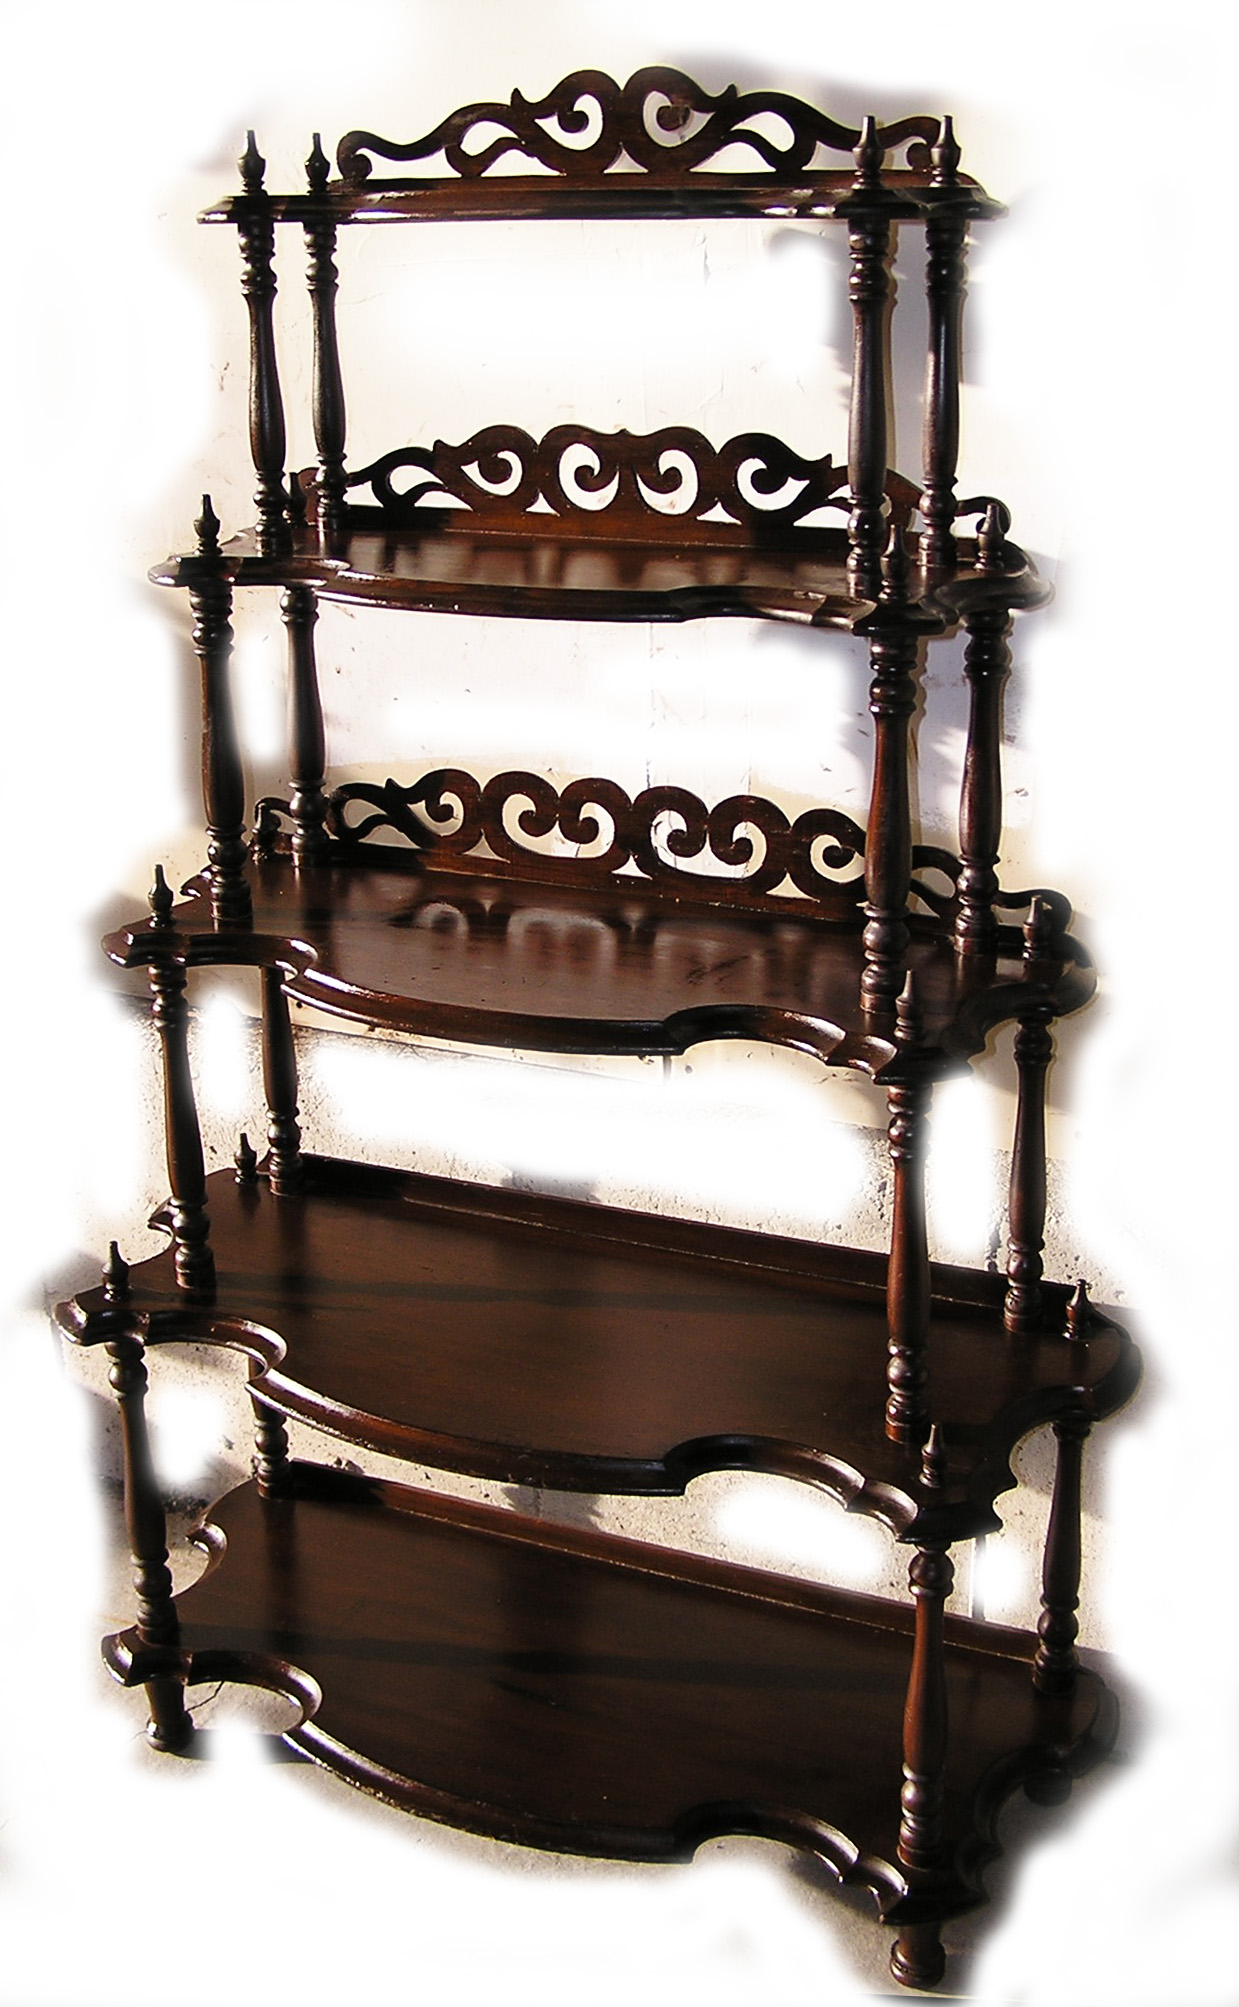 classifieds antiques antique furniture antique etageres curios for sale. Black Bedroom Furniture Sets. Home Design Ideas